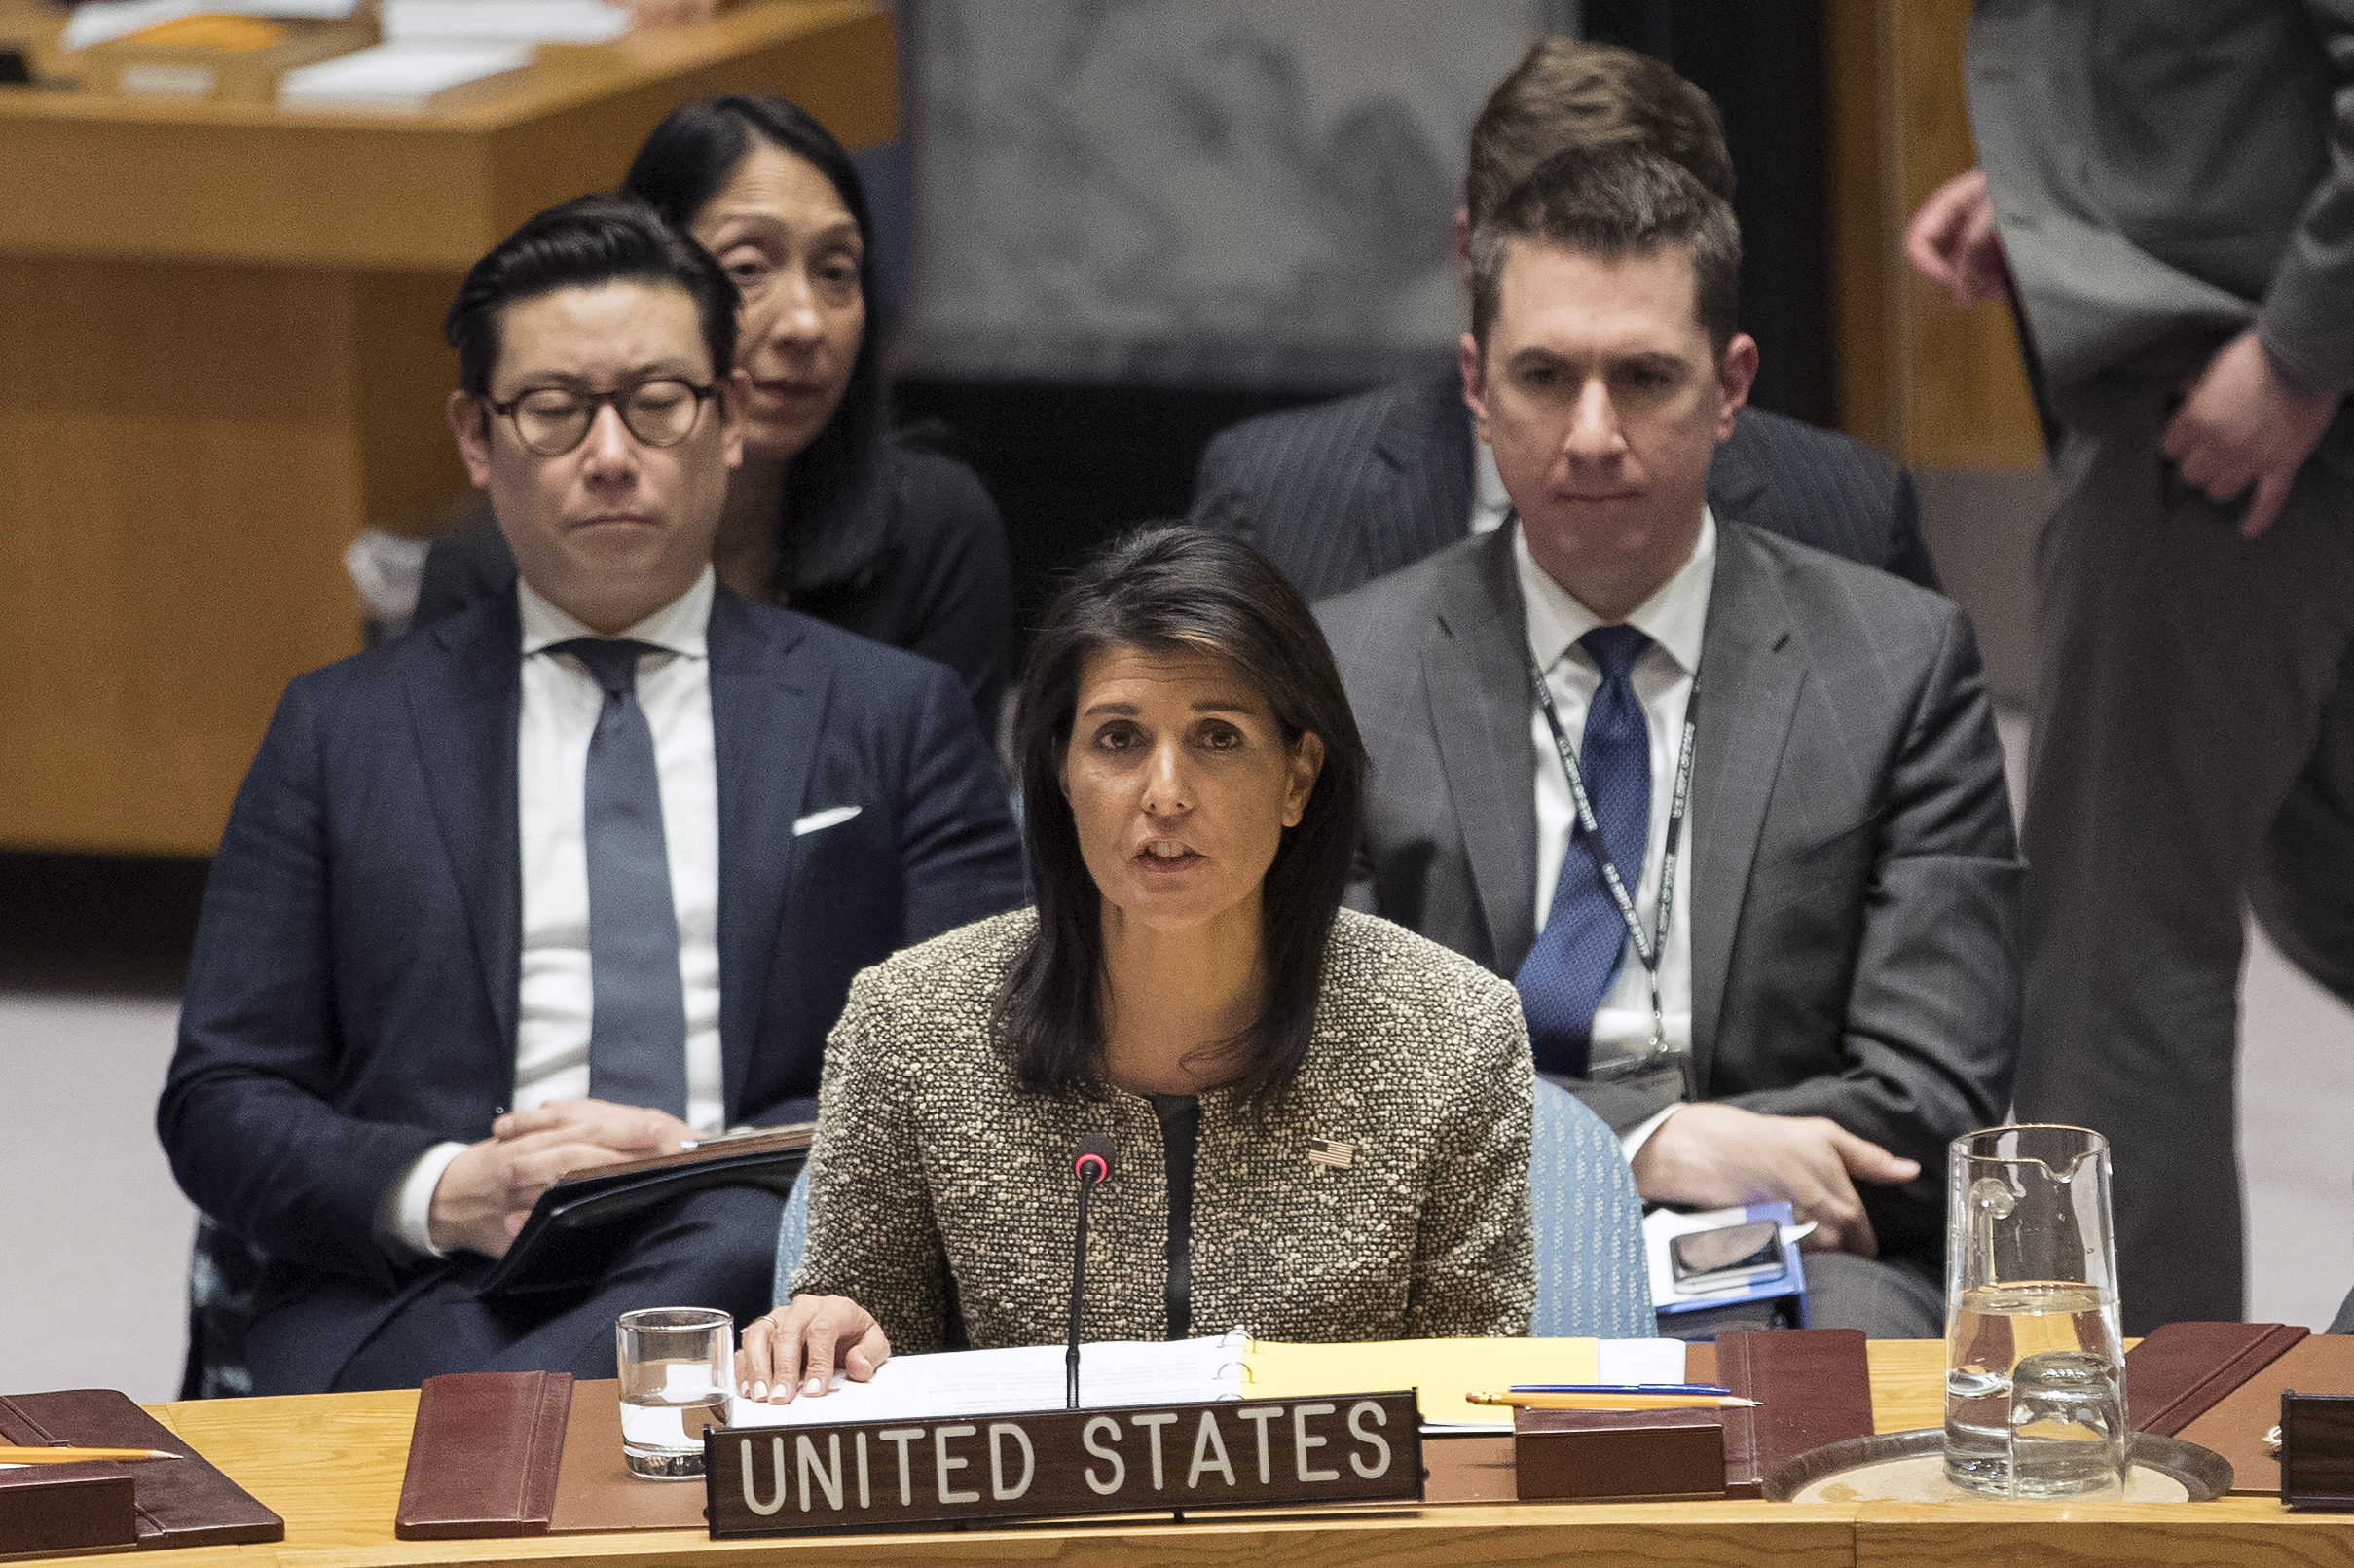 Nikki Haley, U.S. ambassador to the United Nations, speaks during a Security Council meeting on the situation in North Korea, Nov. 29, 2017 at United Nations headquarters.